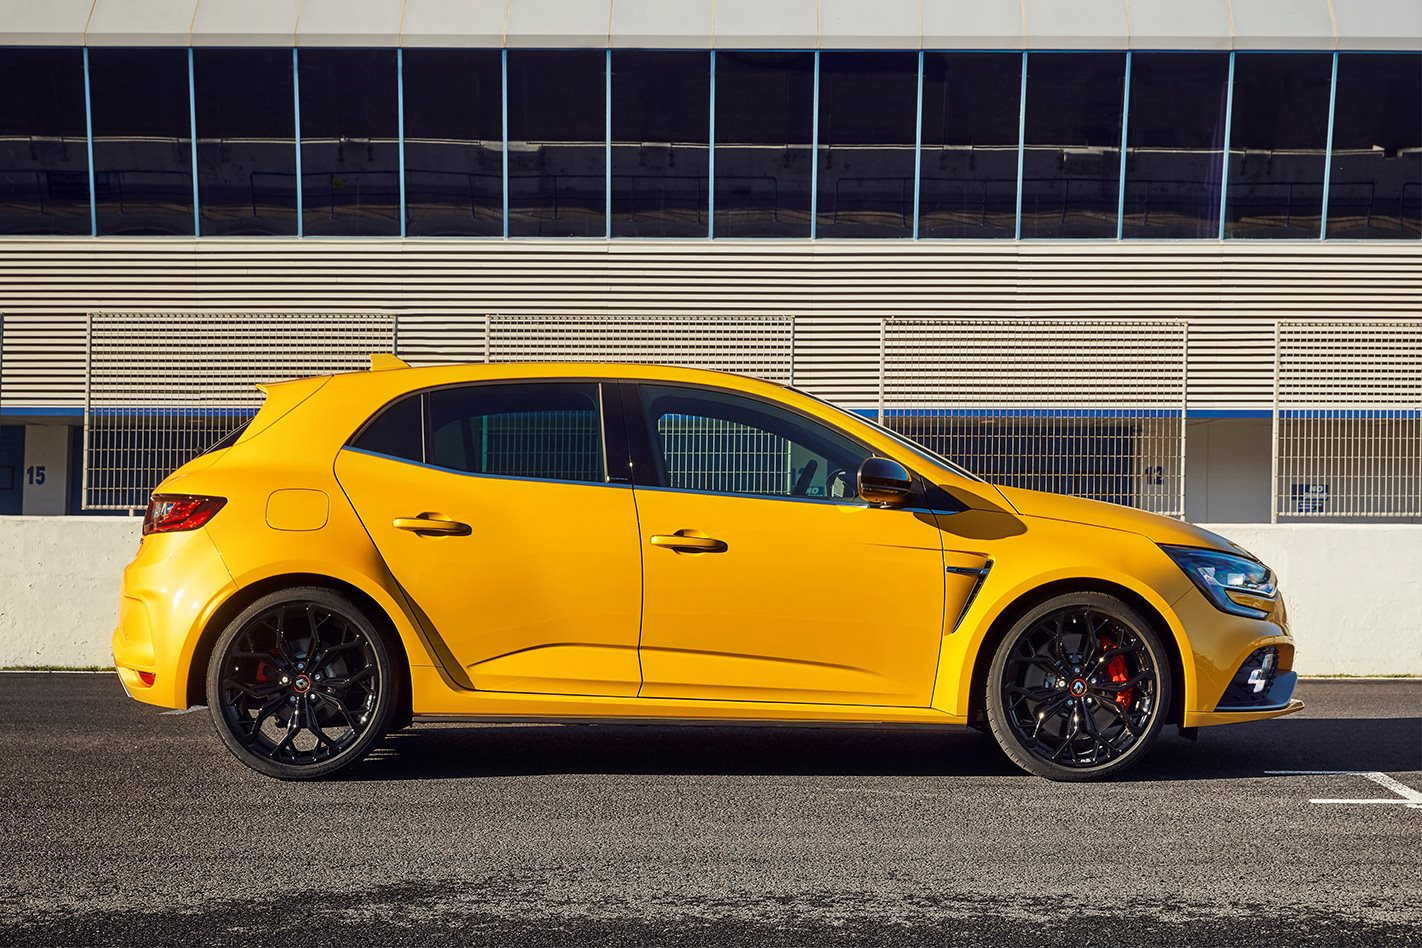 Australia Is The Third Largest Market Globally For RenaultSport Product,  Behind France And Germany. The Addition Of The Cup Chassis Pack To The  Australian ...